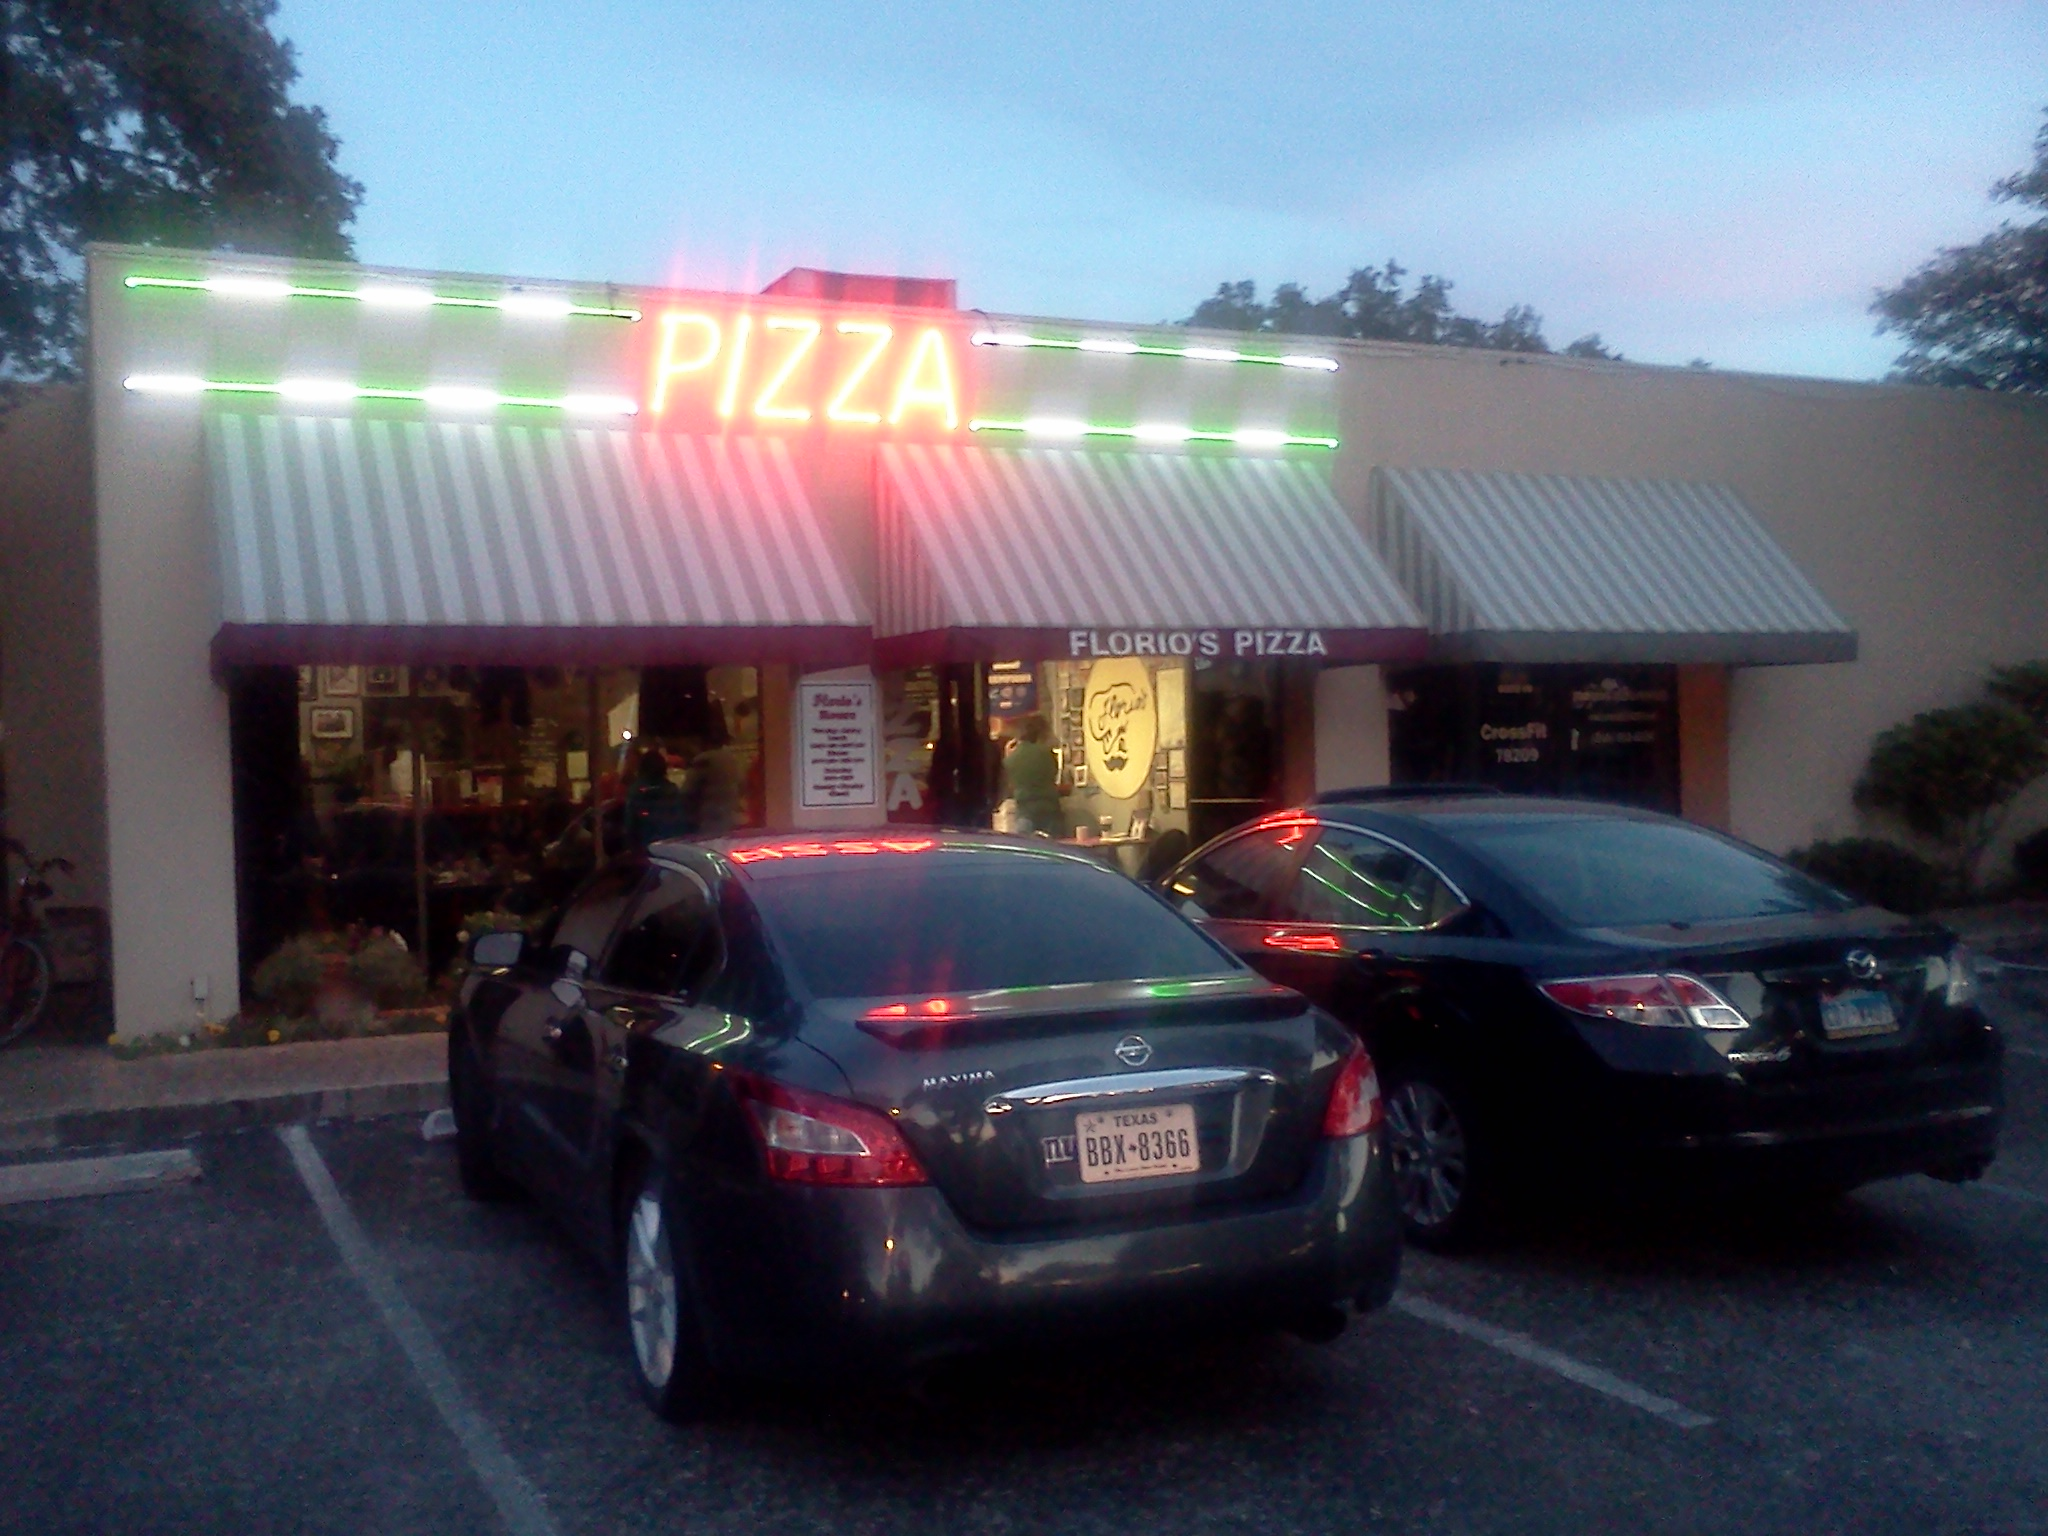 Photo of Florio's Pizza at 7701 Broadway at Nottingham in San Antonio, Texas.